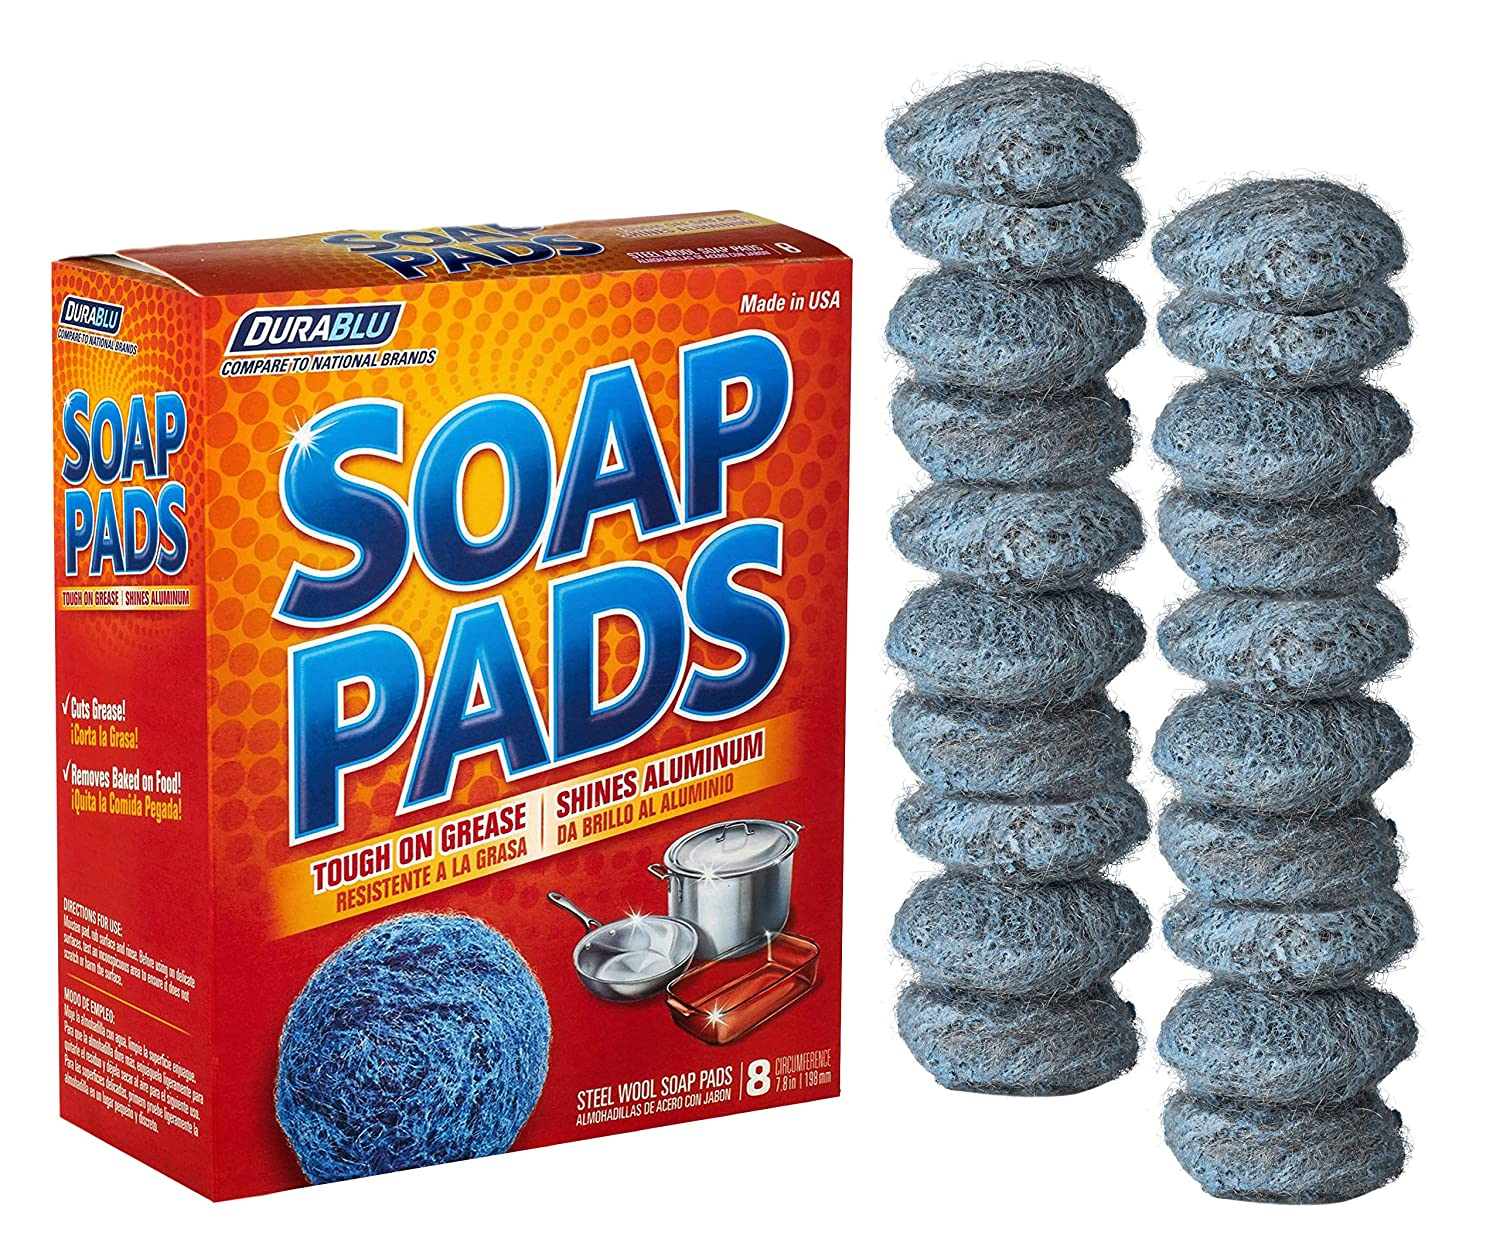 20 pack Steel Wool Soap Pads - Metal Scouring Cooktop Cleaning Pads used for Dishes, Pots, Pans, and Ovens - Pre-Soaped for Easy Cleaning of Tough Kitchen Grease and Oil